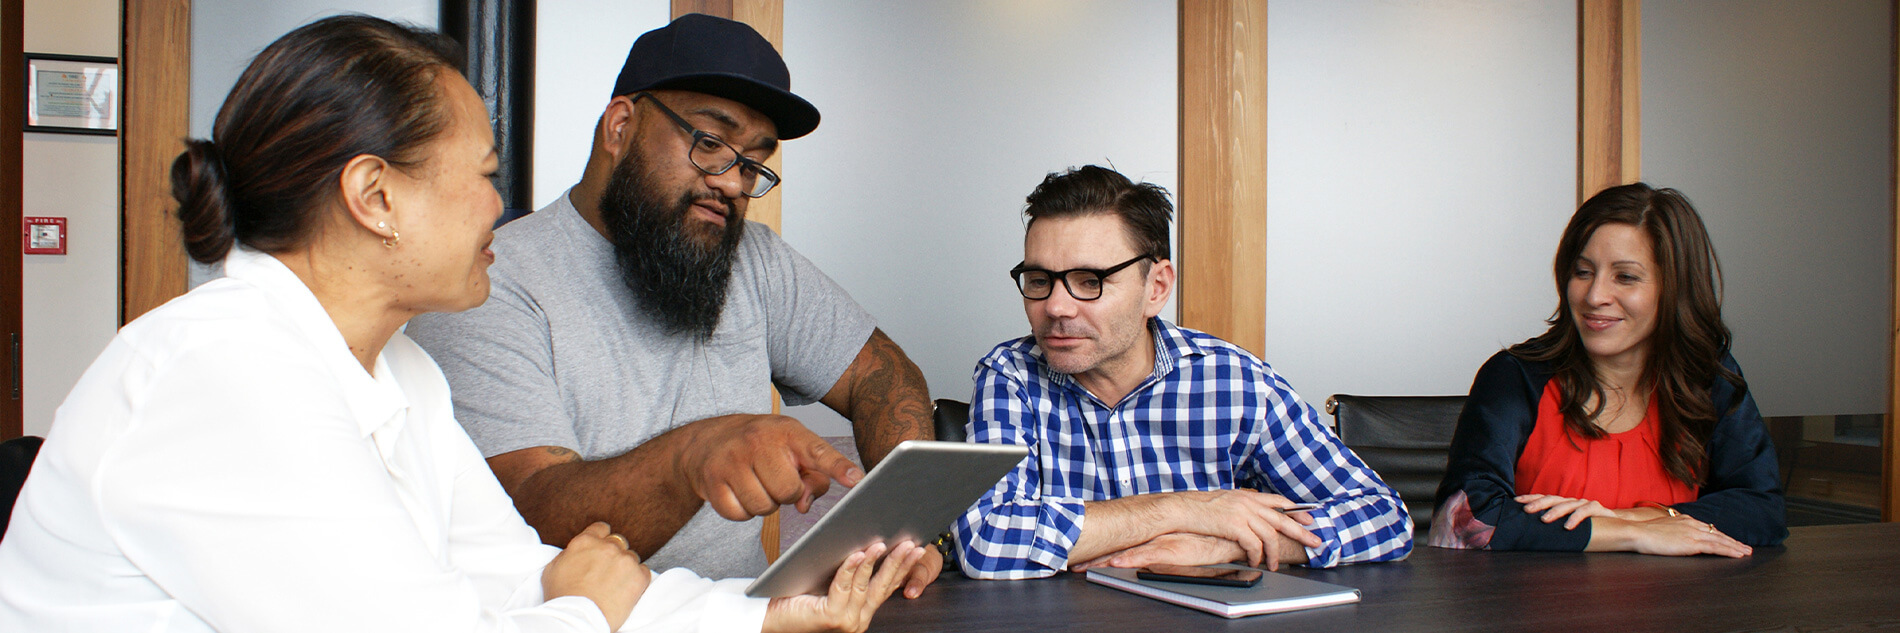 Two Boost developers working together on an Agile development project.